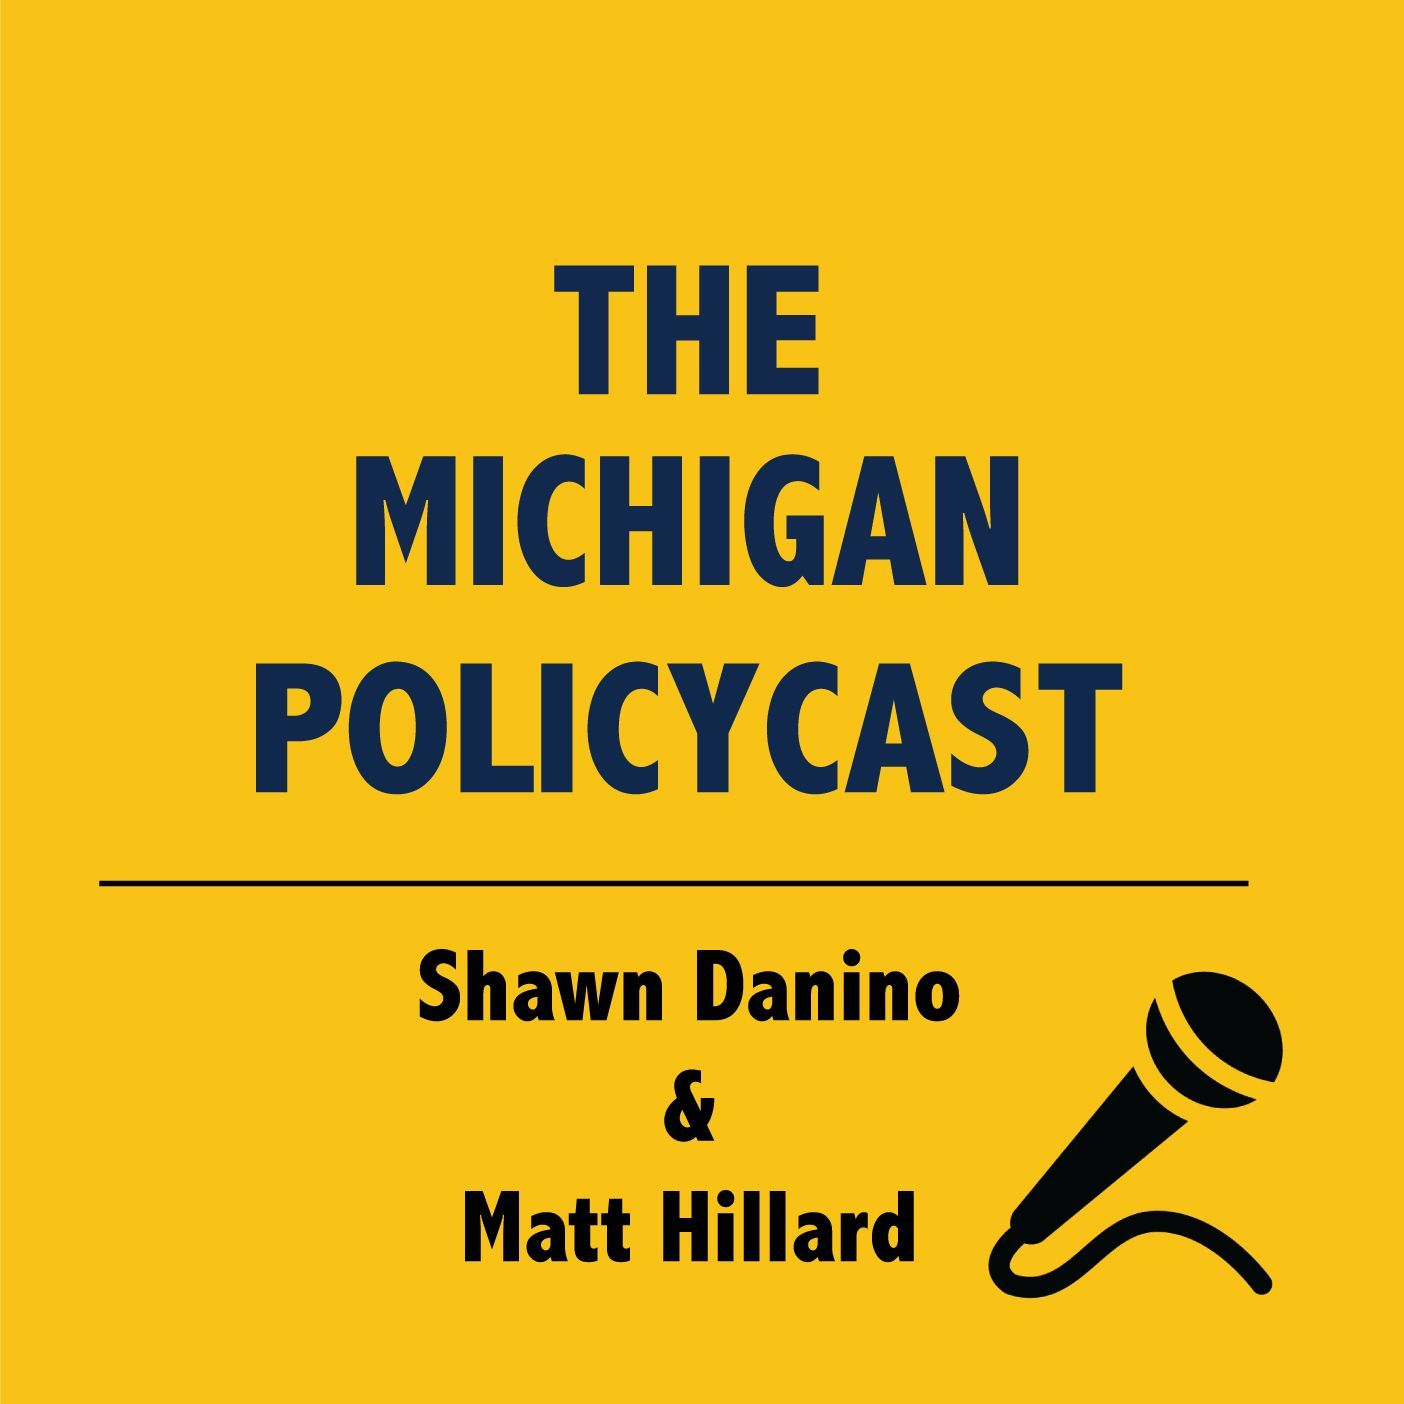 Michigan PolicyCast Epsiode 9 - Meeting Mick Mulvaney